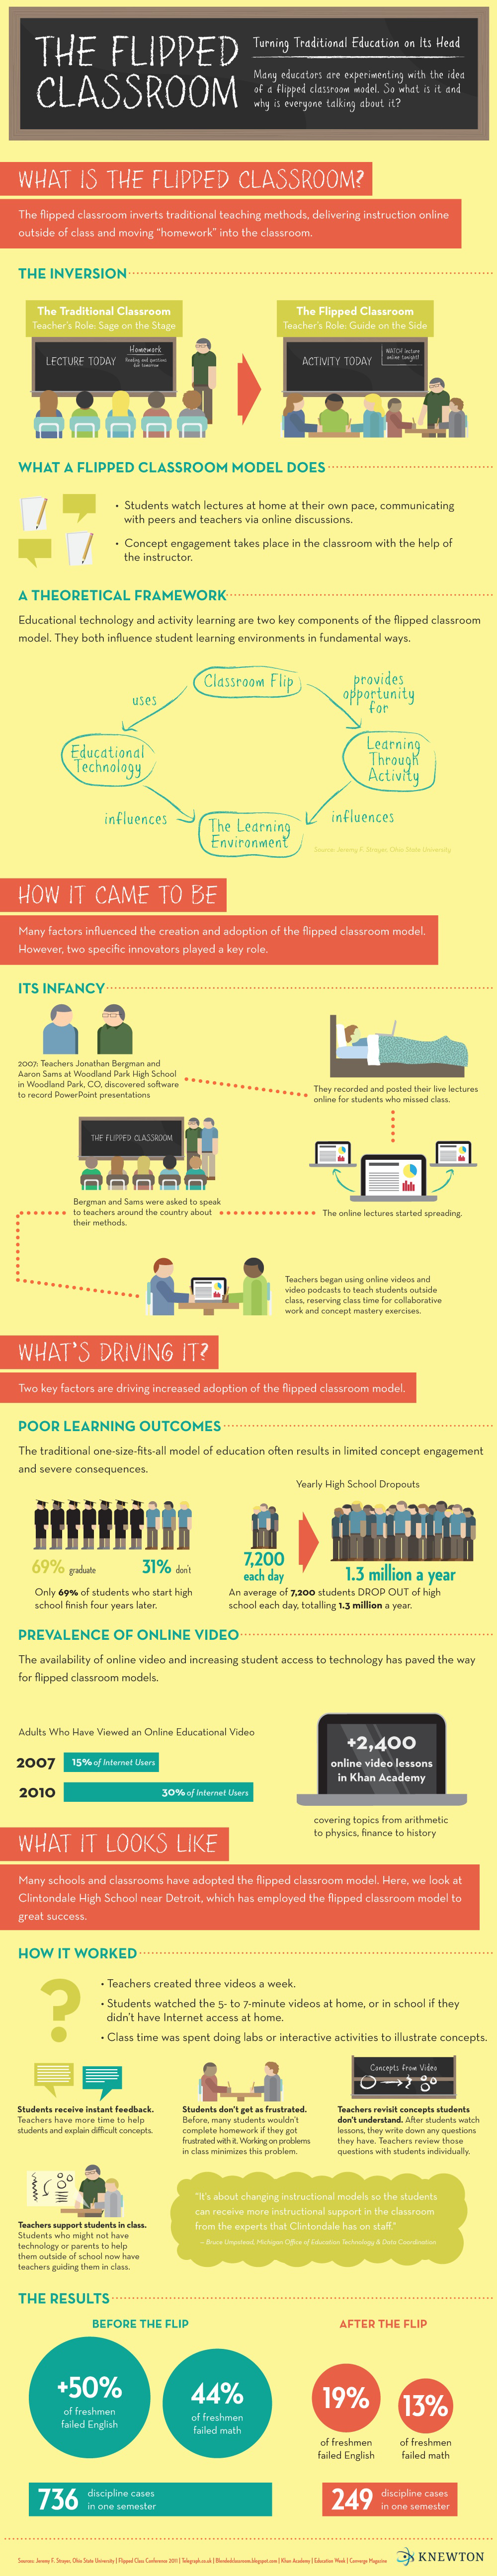 Flipped Classroom: Turning Traditional Education On Its Head